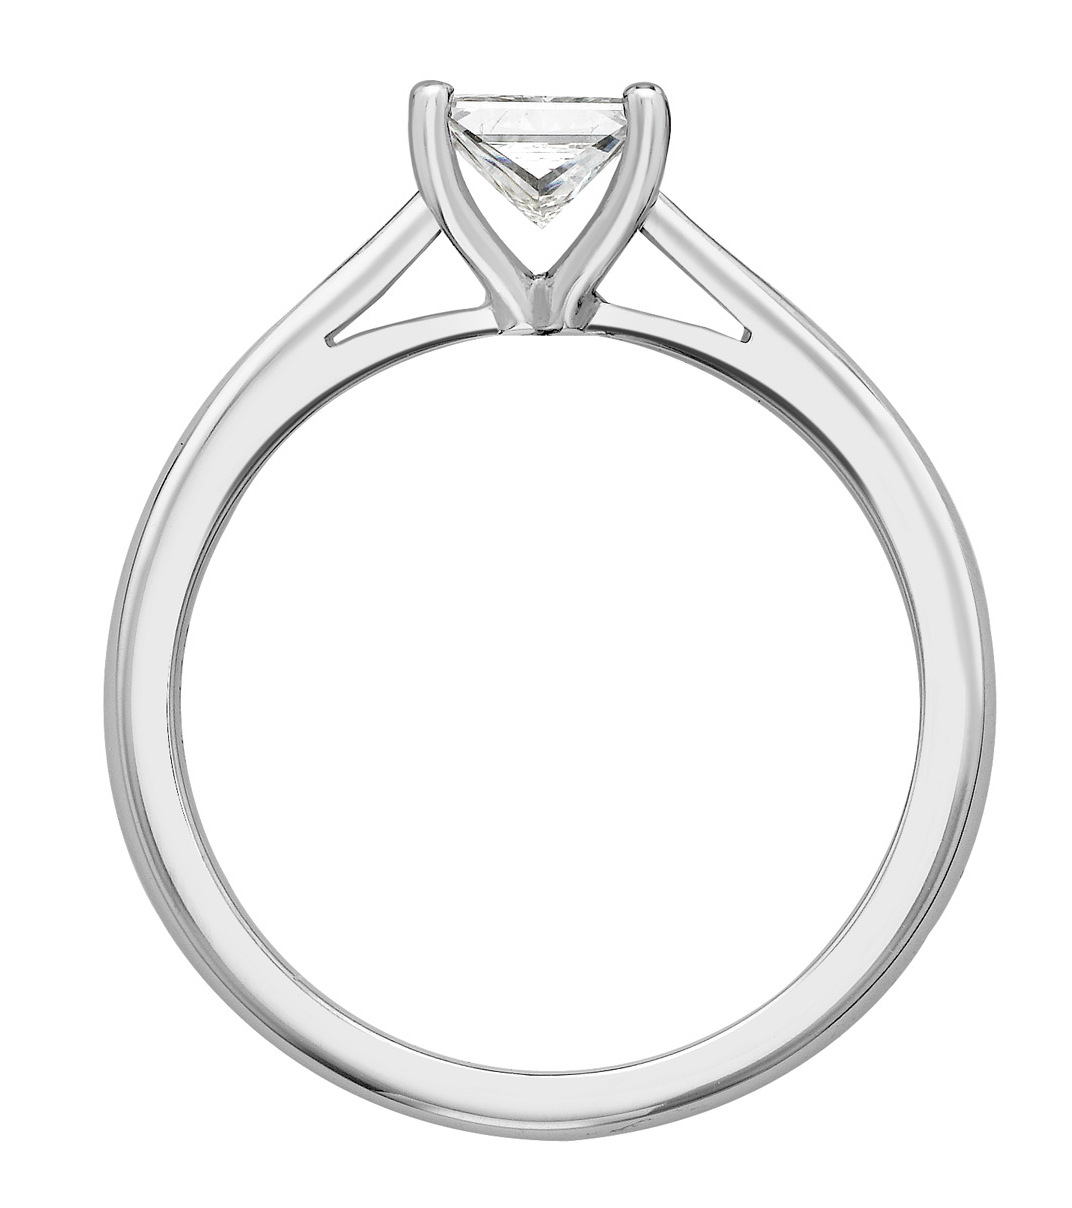 Princess Cut Four Claw White Gold Engagement Ring GRC785 Image 2